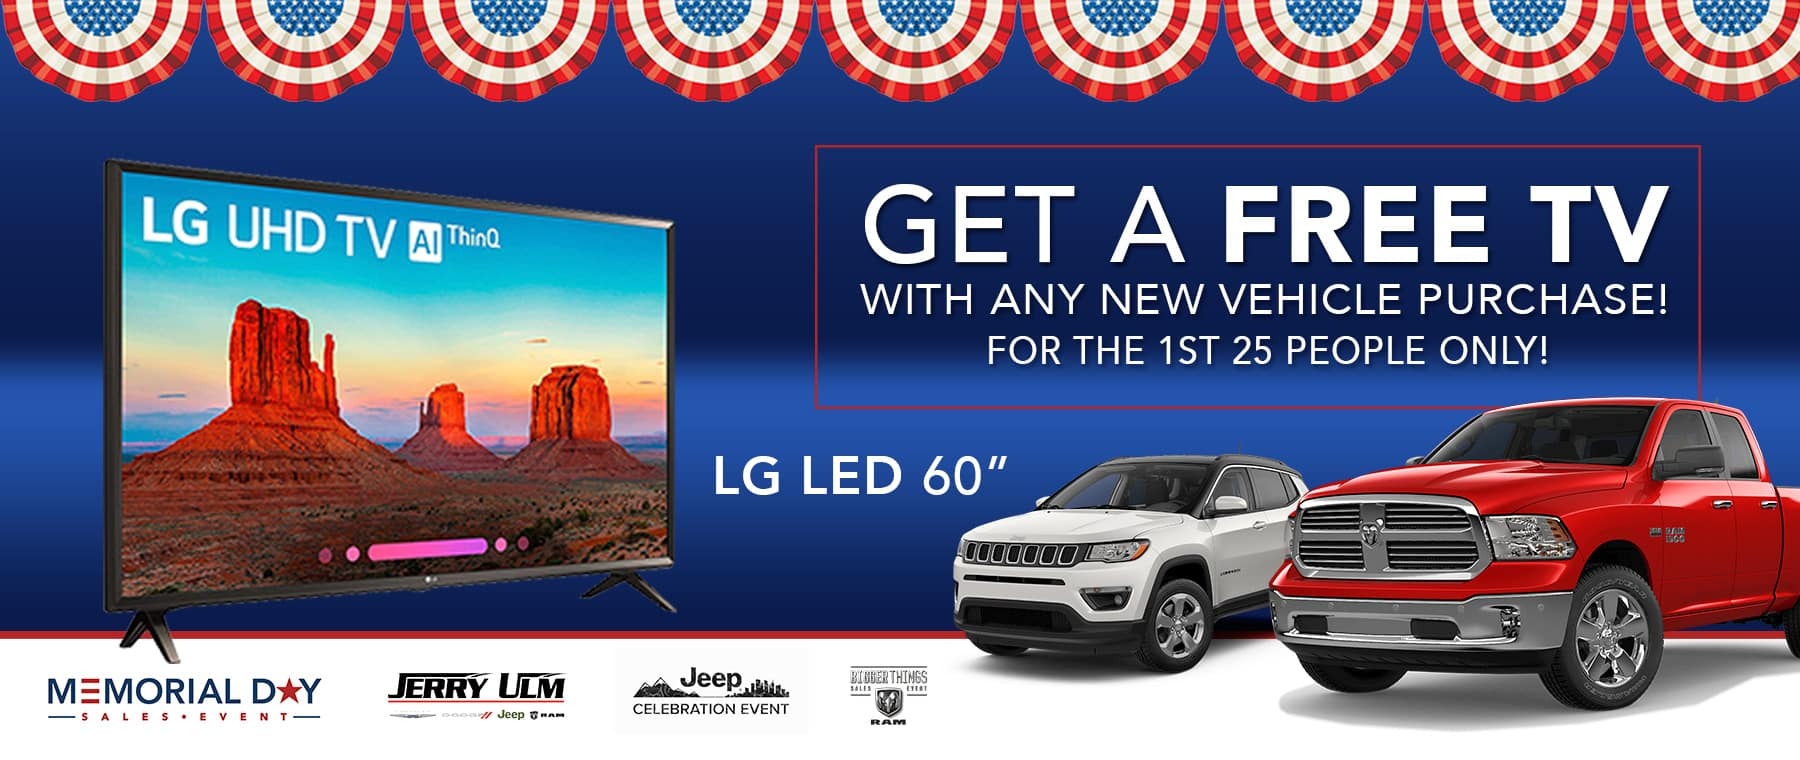 Get a free new TV with any vehicle purchase for the 1st 25 people only this memorial day!